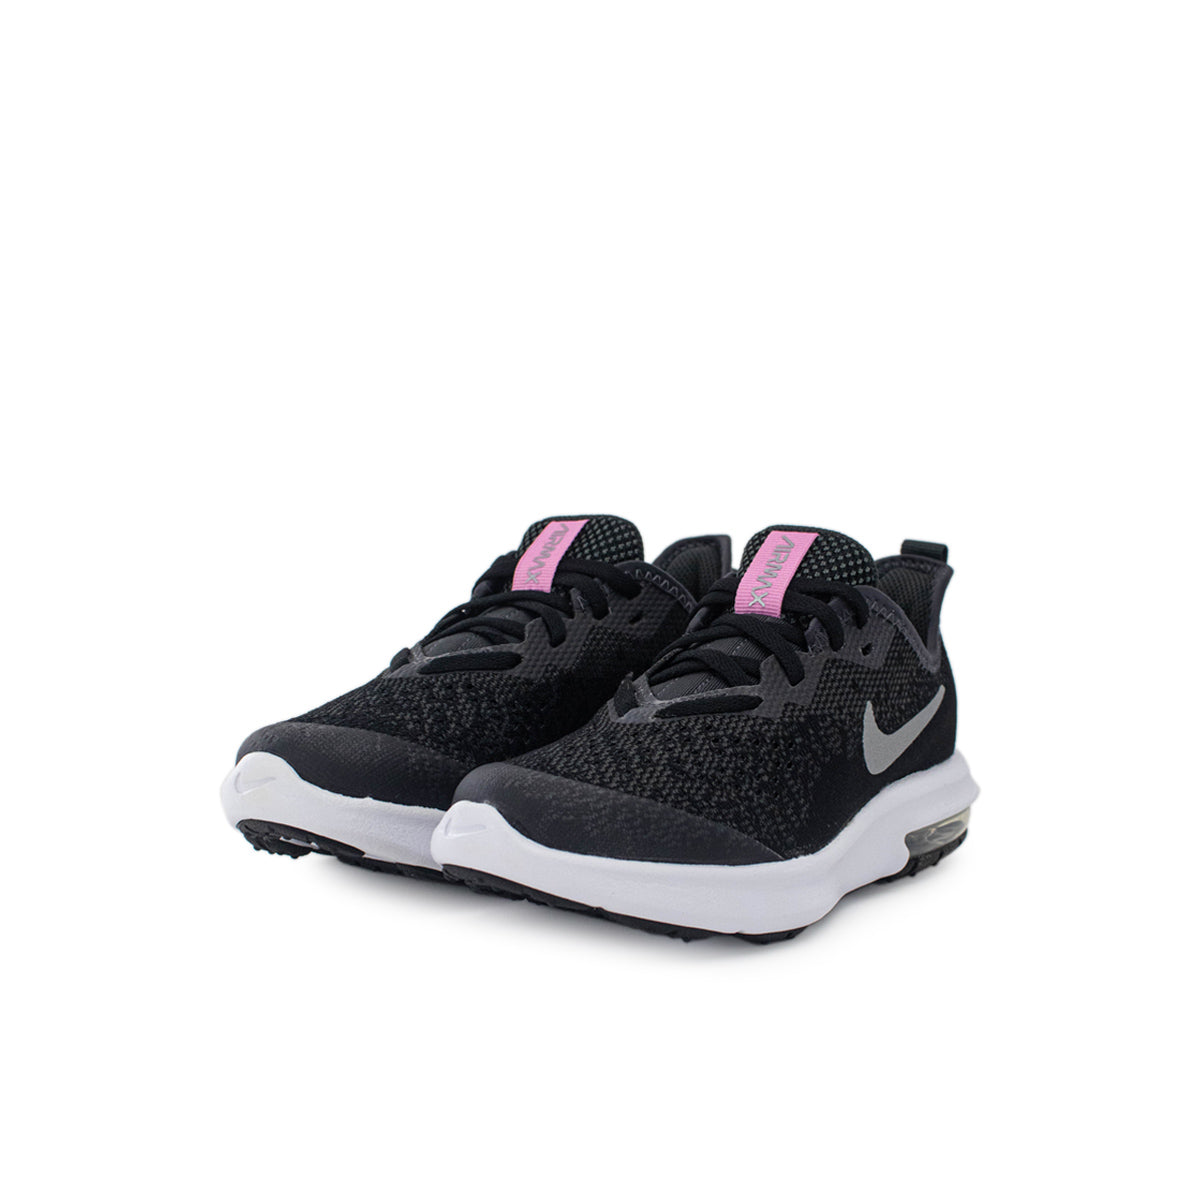 Nike Air Max Sequent 4 (PS) AQ3849-001-